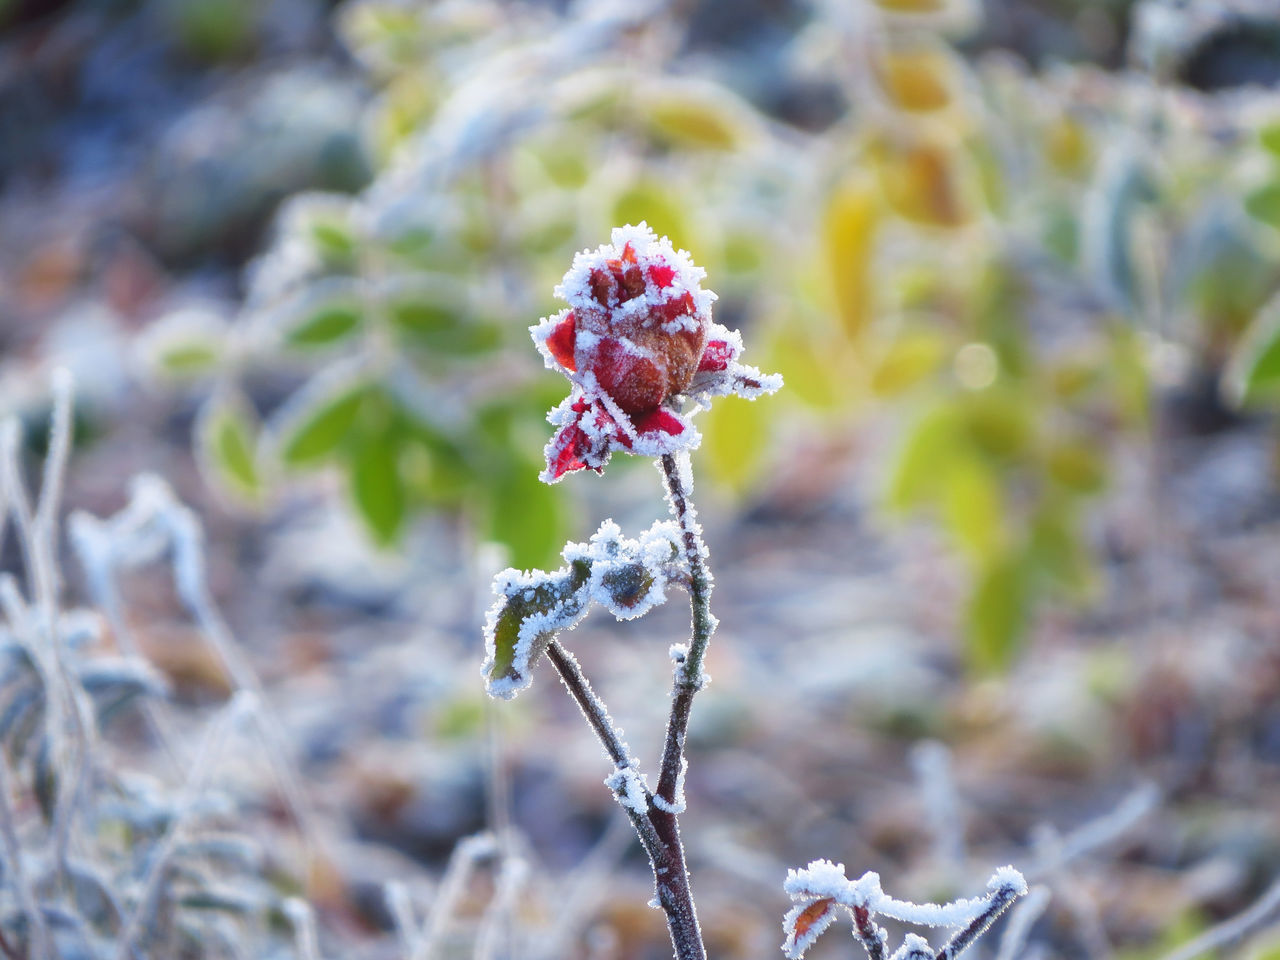 Beauty And The Beast Cold Temperature Cold Weather Fragility Frost Frosty Frosty Flower Frosty Mornings Frosty Rose Frozen Frozen Nature Hoar Frost Hoarfrost Icy Rime Rose - Flower Roses White Frost Winter Winter Scene Winter Scenery Winter Season Winter Wonderland Winter_collection Wintertime